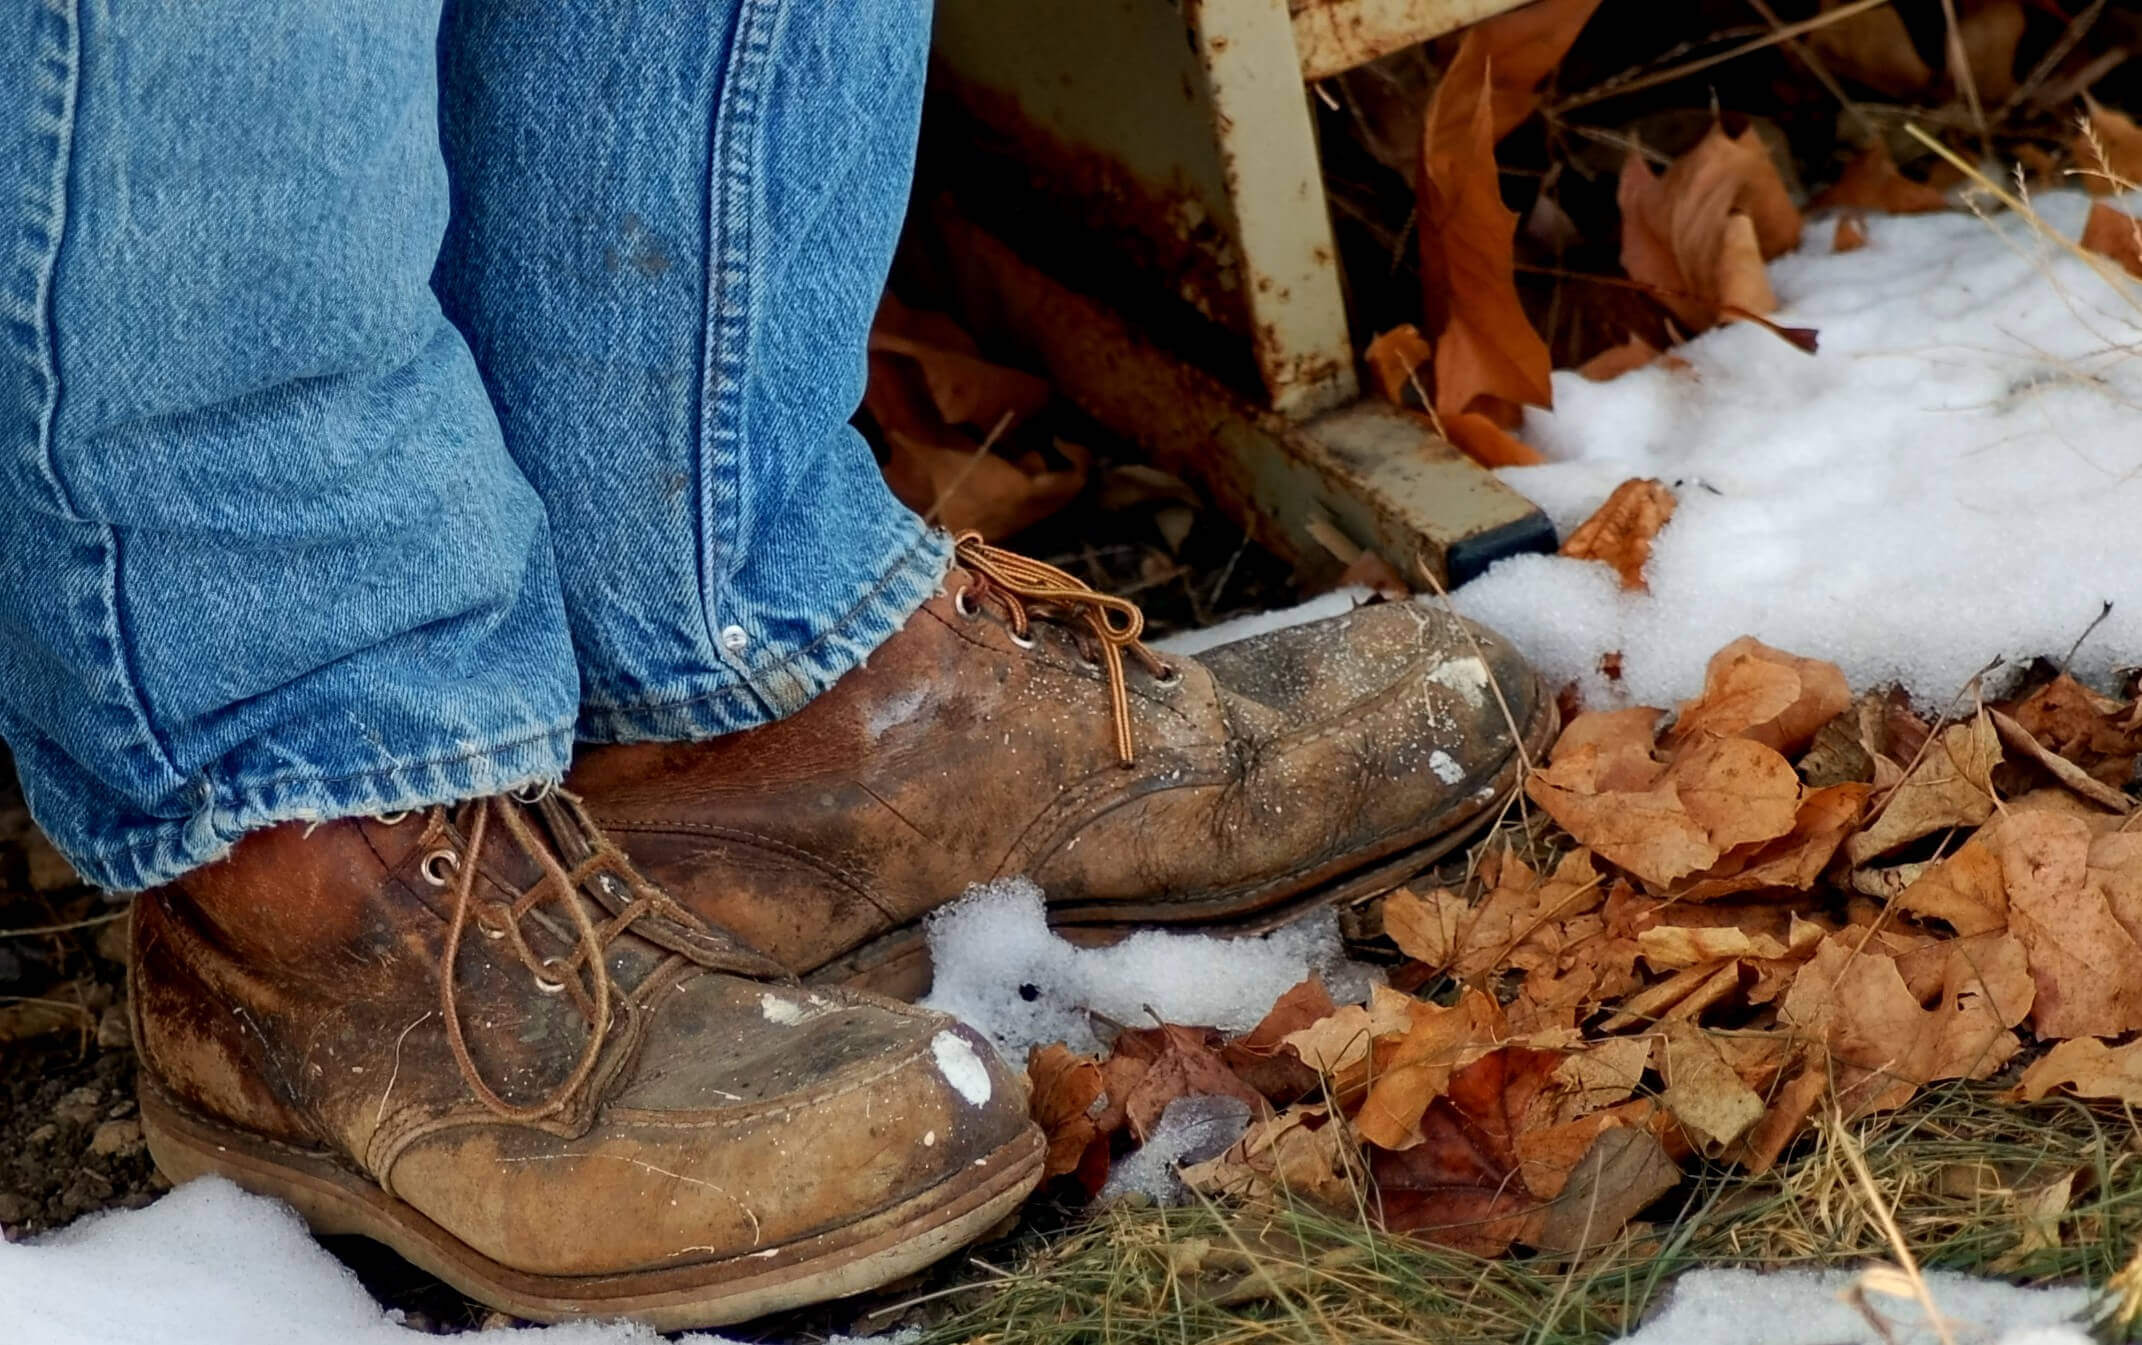 Winter Footwear Making The Transition To Keep Your Feet Warm